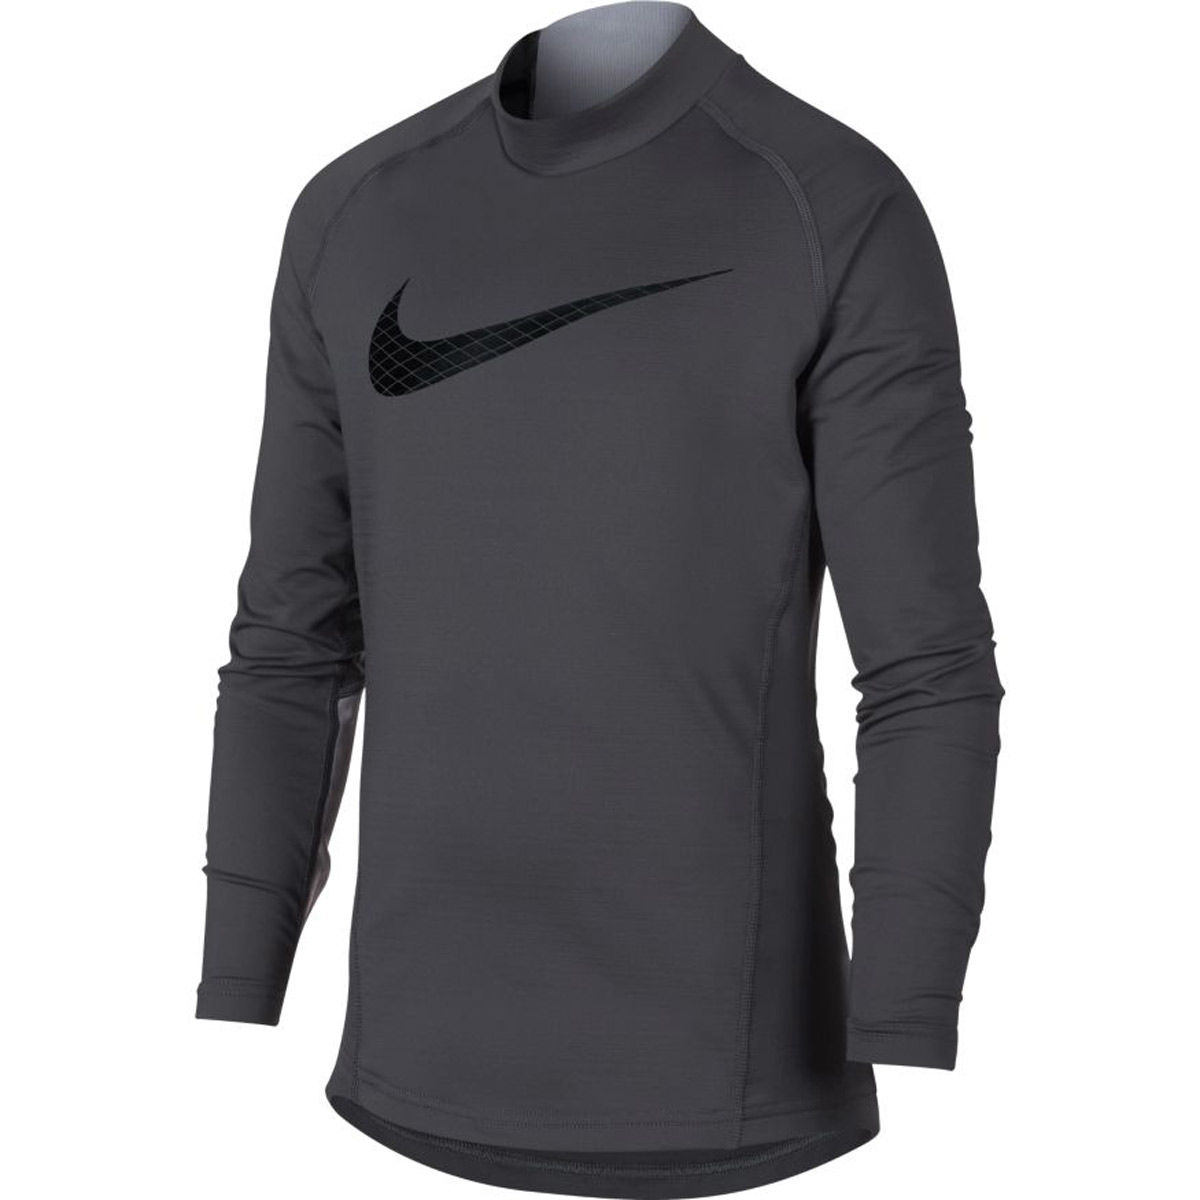 Nike Pro Warm Boys Long Sleeve Mock Neck Top